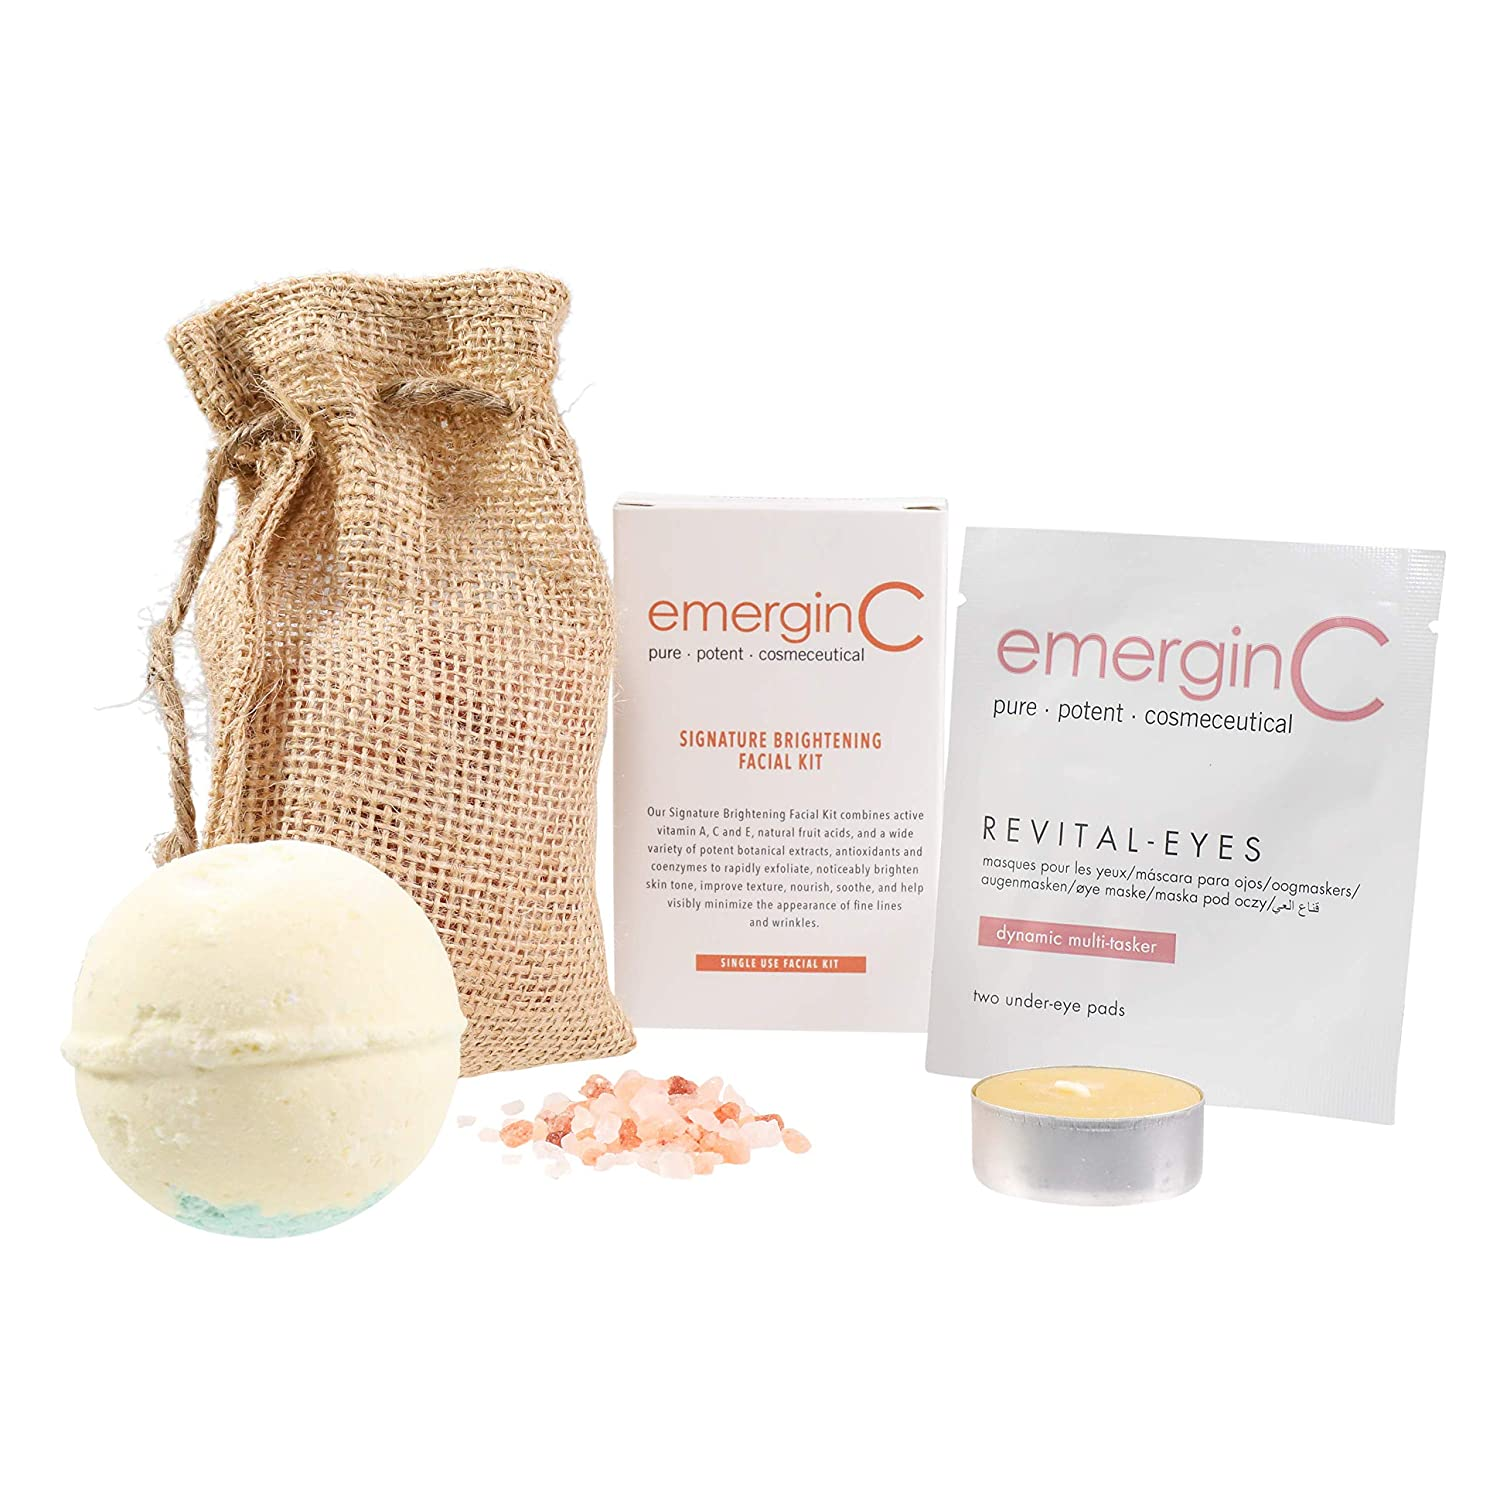 emerginC Scientific At-Home Luxury Spa Kit - Signature - 5-Piece Set - Brightening Facial Kit, Revital-Eyes Mask Sample, Essential Oil Bath Bomb, Himalayan Bath Salt Pack, Beeswax Purifying Candle